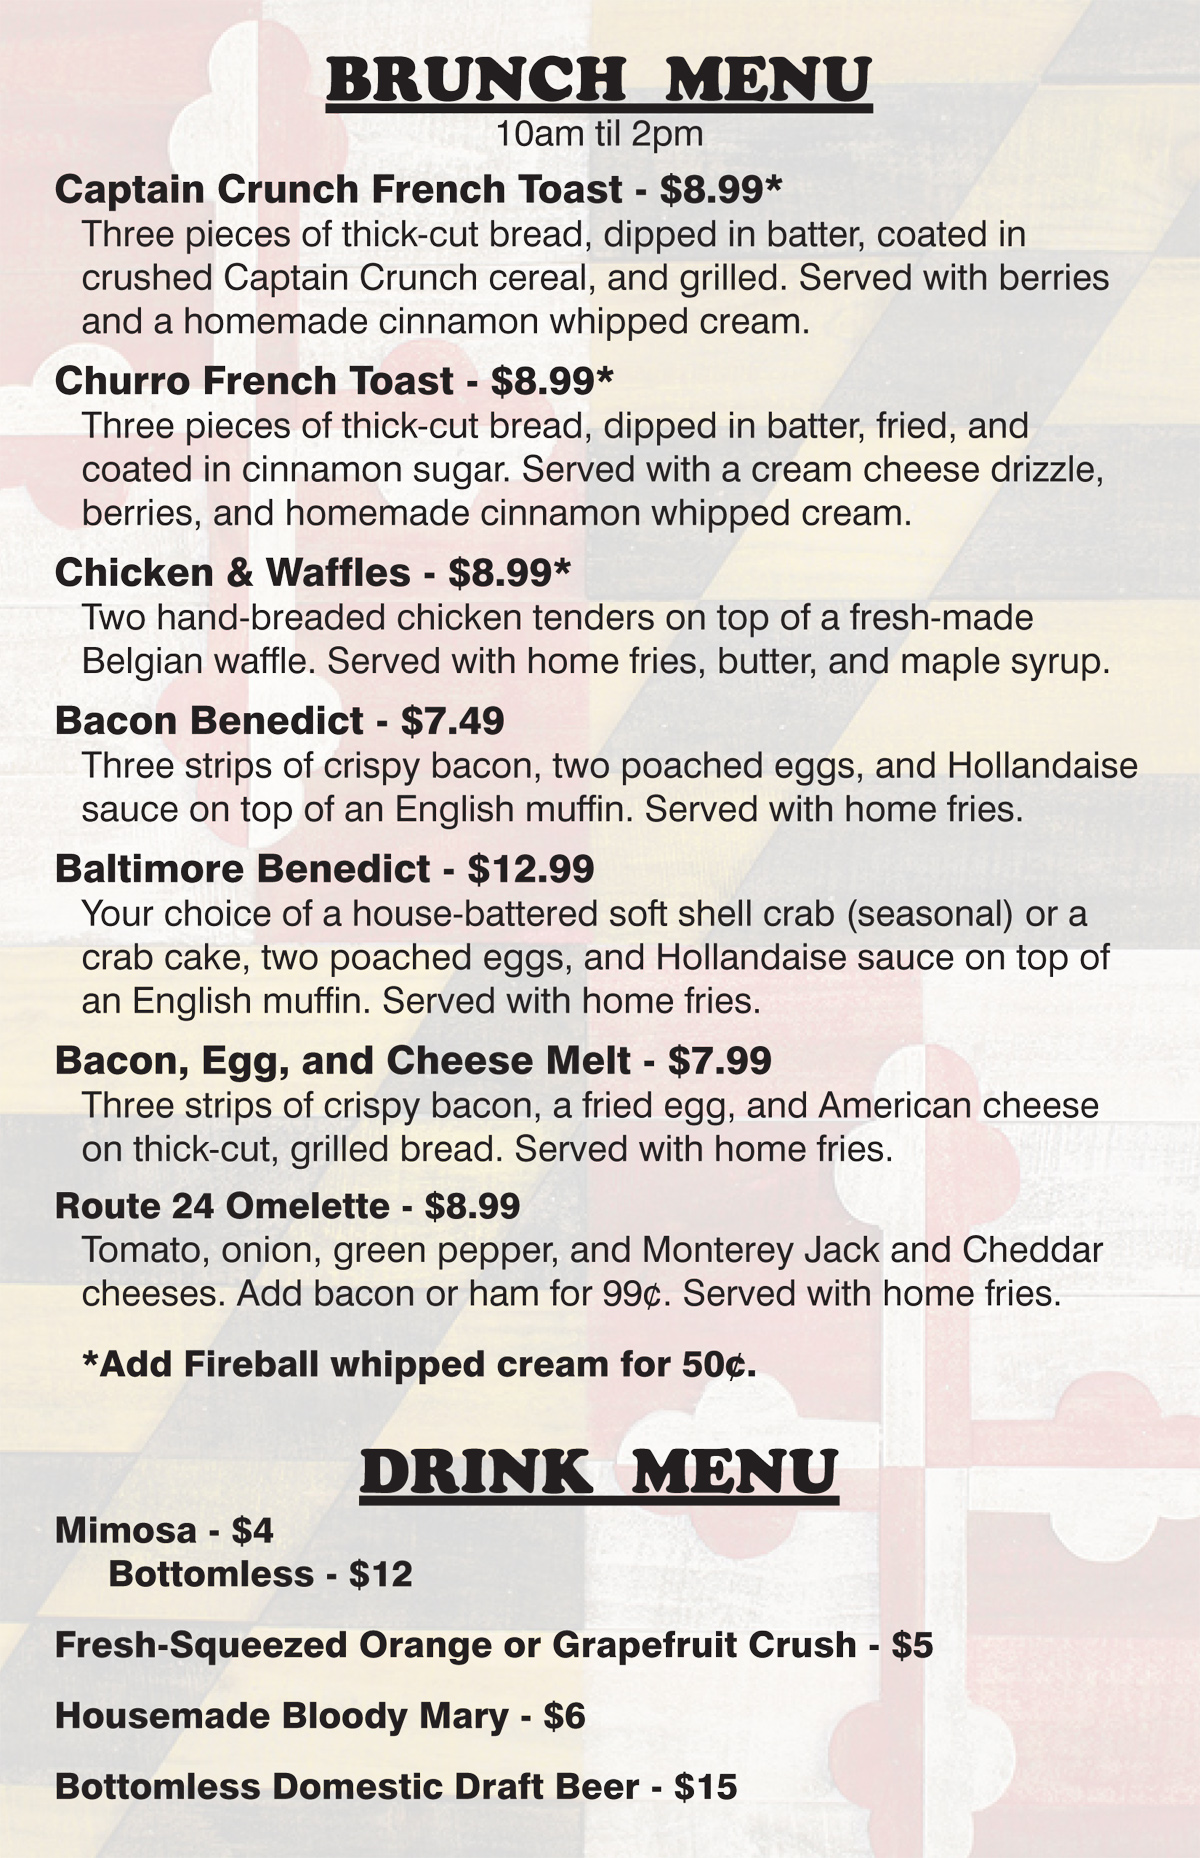 Eat Brunch at Route 24 Ale House from 10am - 2pm on Sundays